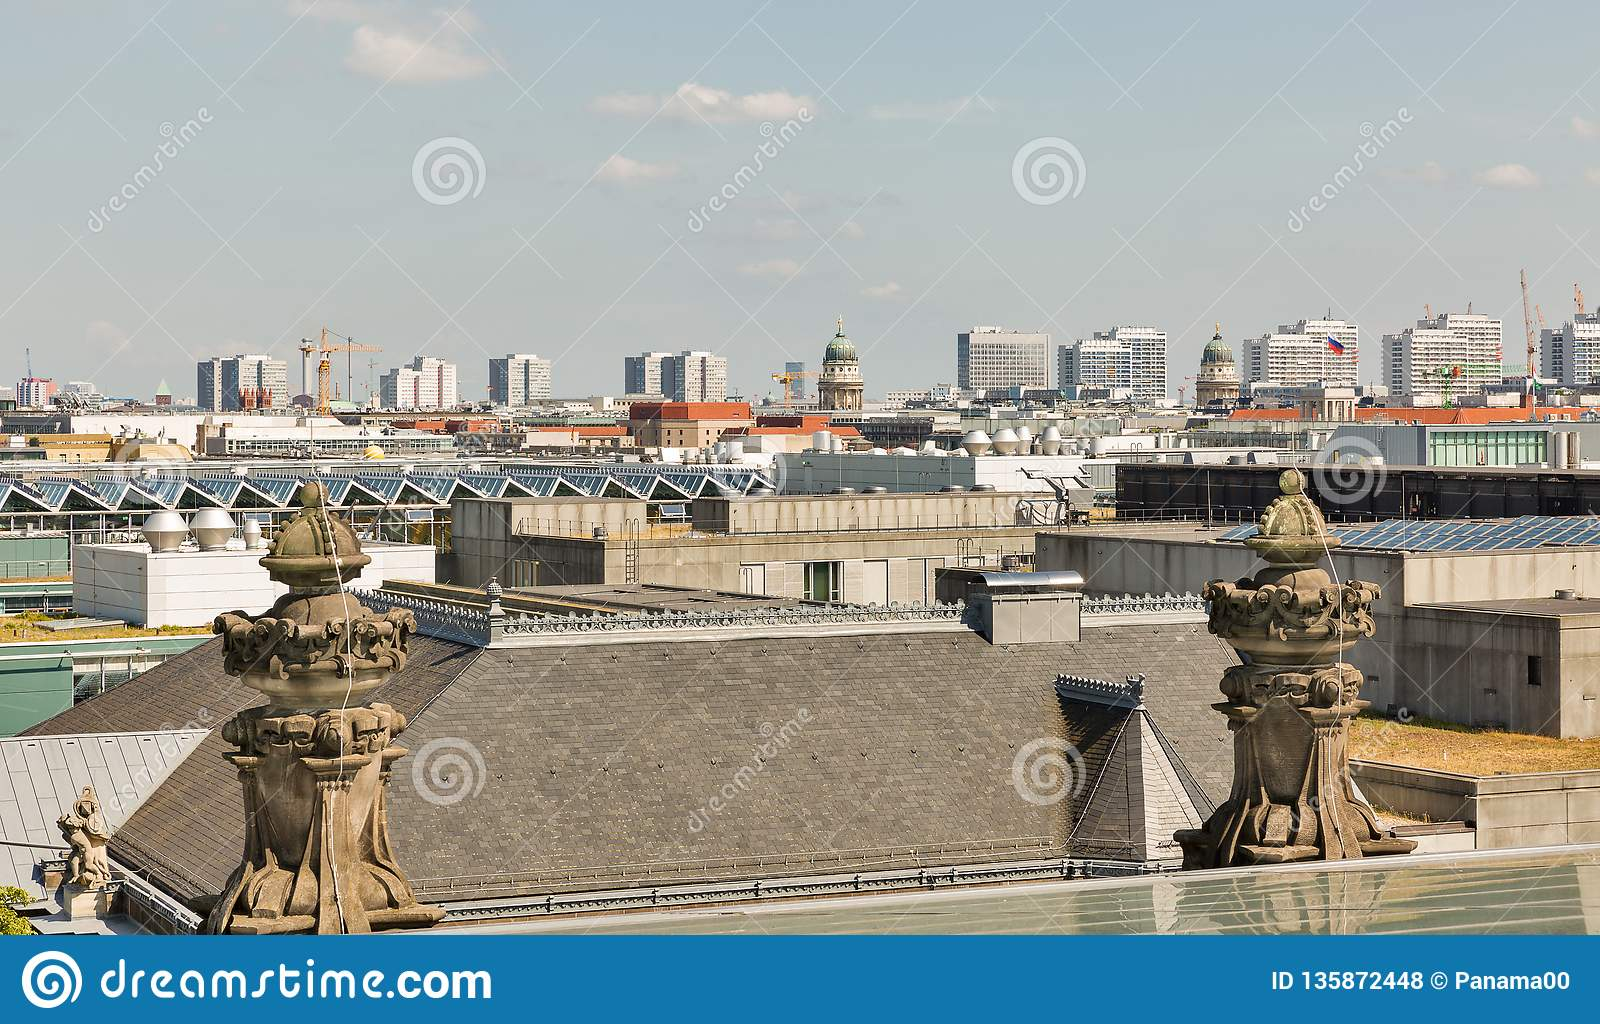 Berlin cityscape from Reichstag roof, Germany